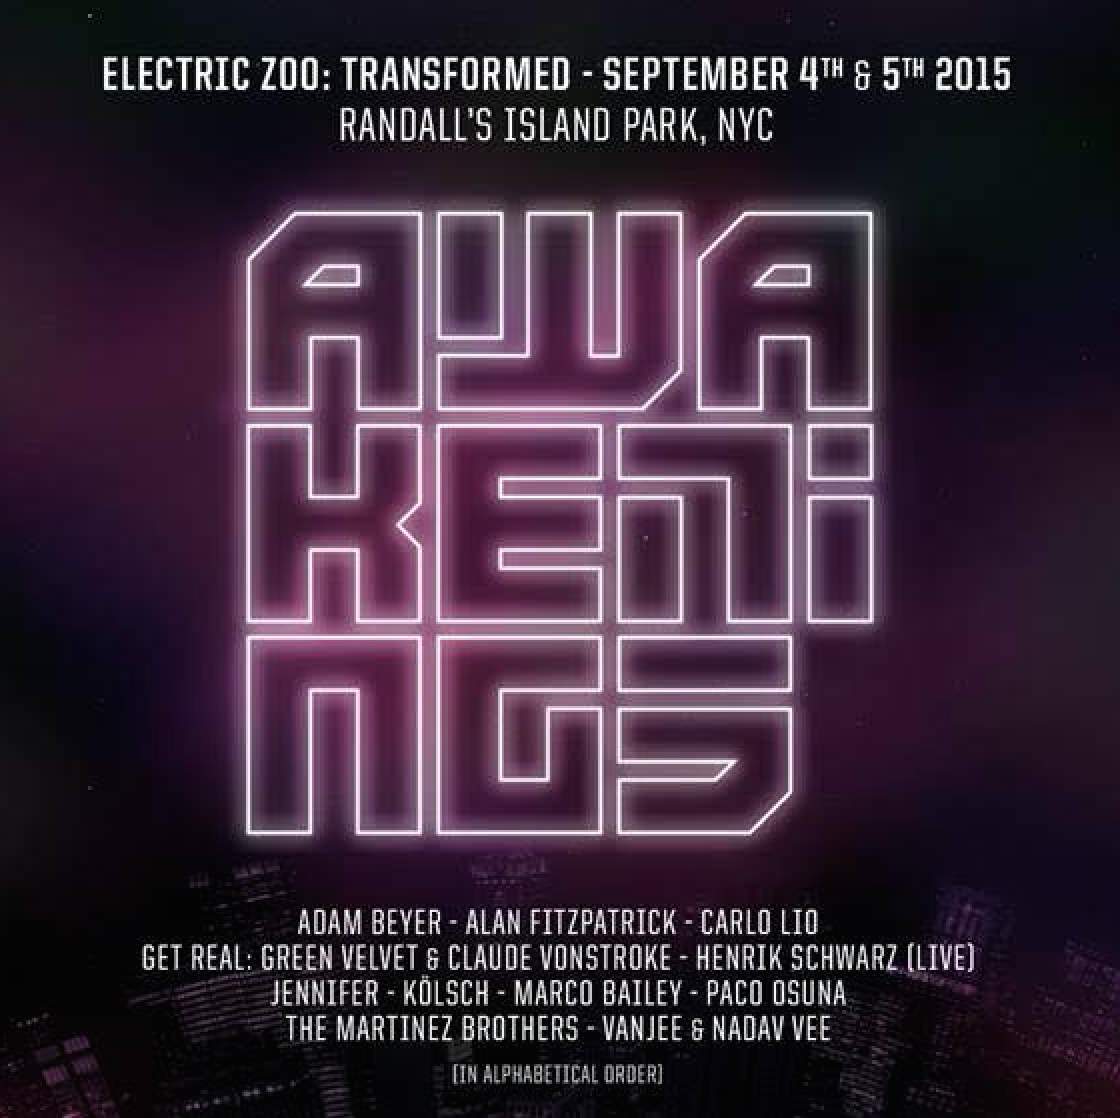 Electric Zoo announces Awakenings stage performers: Adam Beyer, Get Real, Carlo Lio and moreScreen Shot 2015 06 08 At 12.31.03 PM